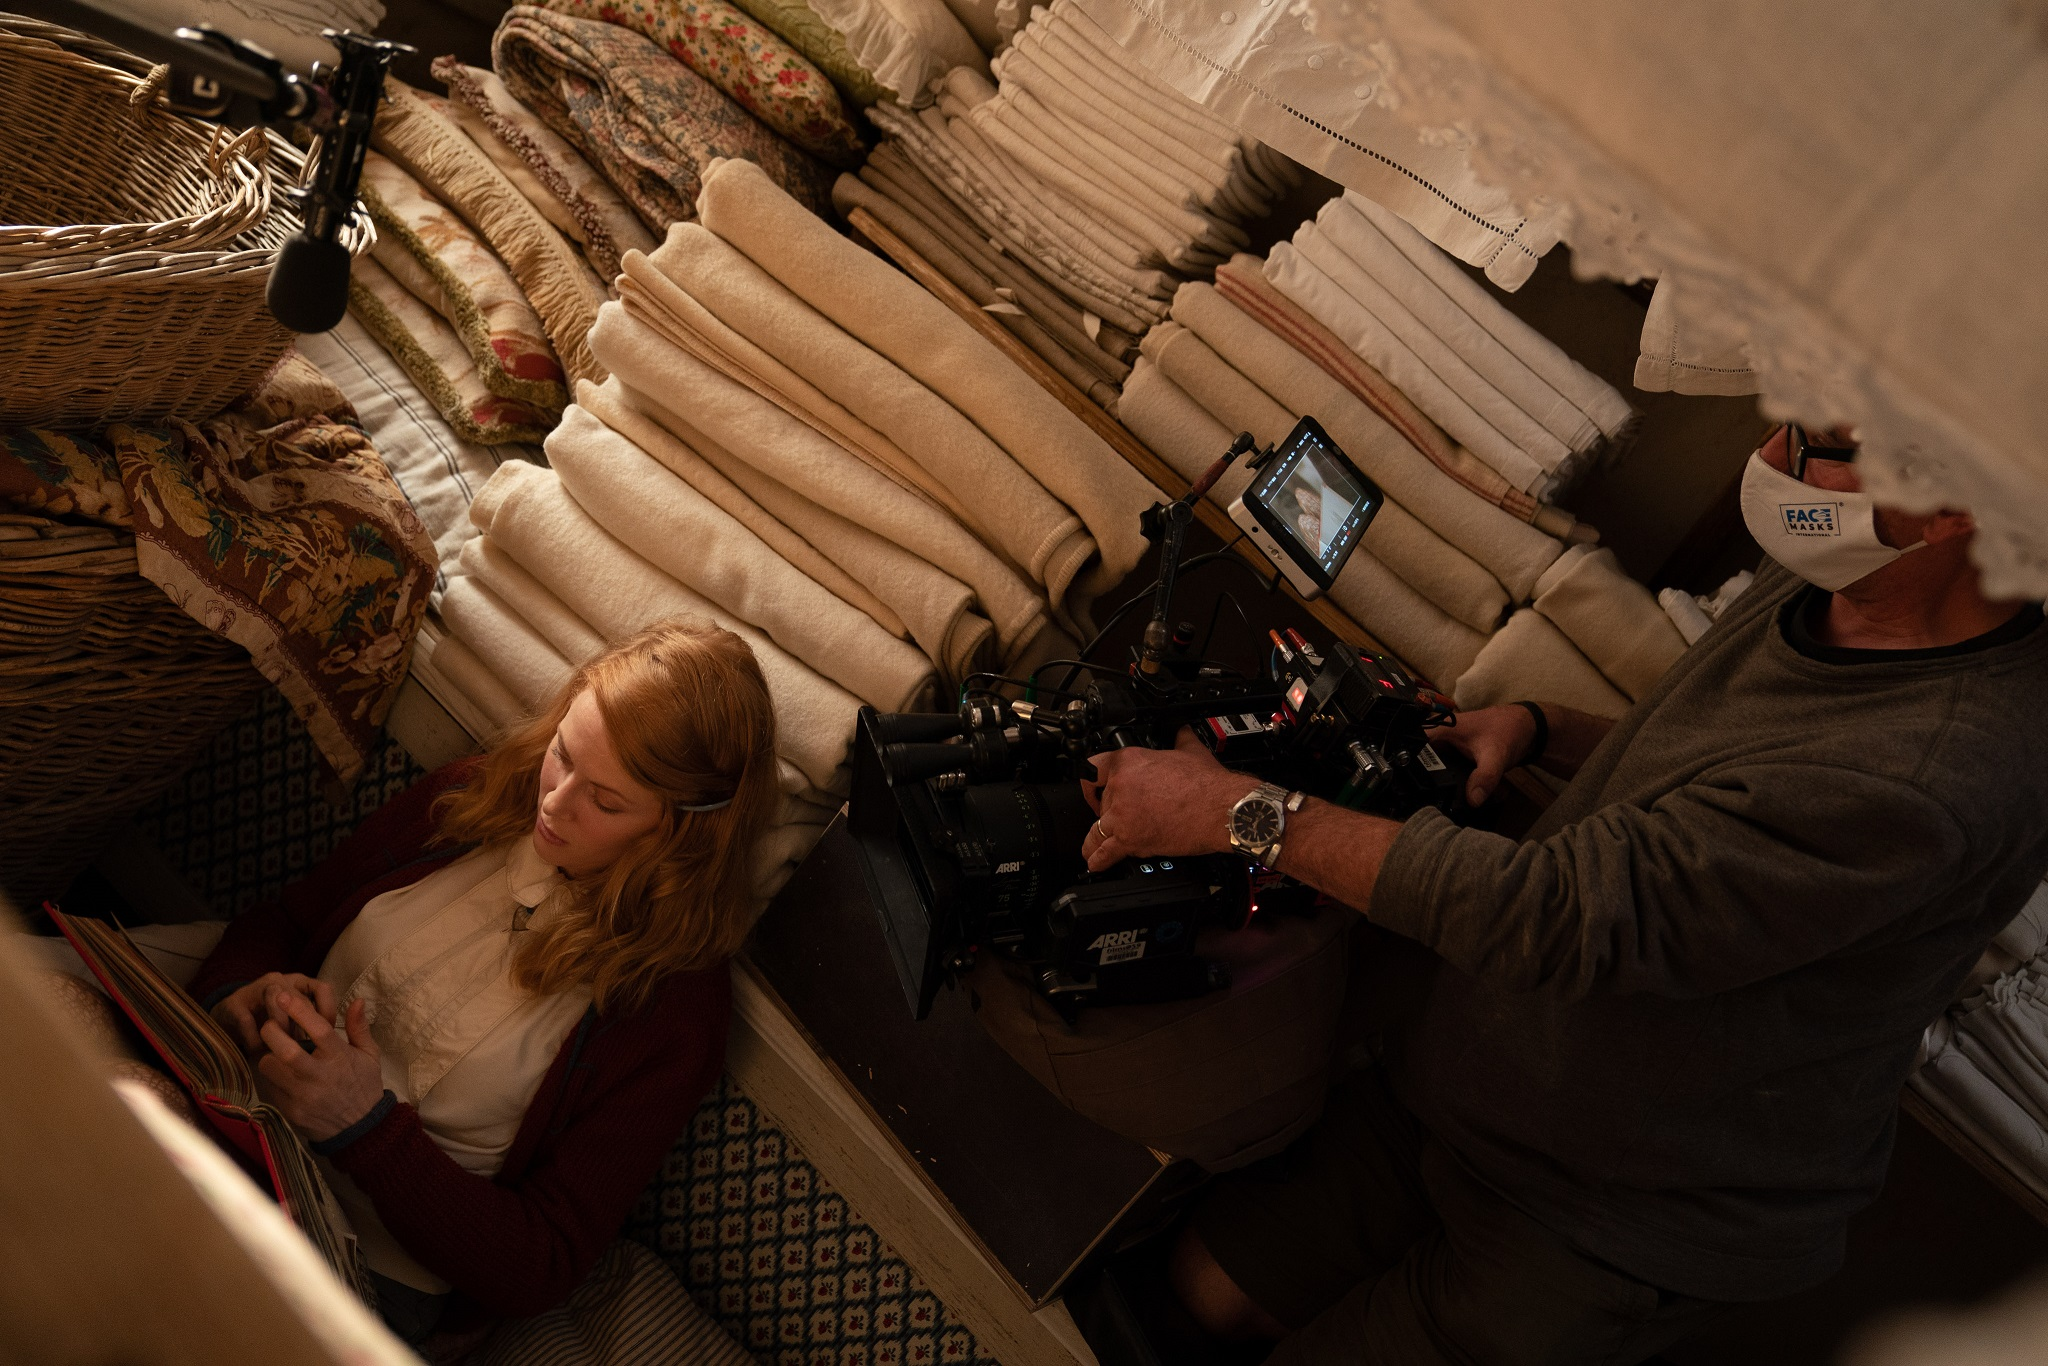 On set at The Bottle Yard Studios - The Pursuit Of Love - Theodora Films Limited & Moonage Pictures Limited - Photographer: Robert Viglasky